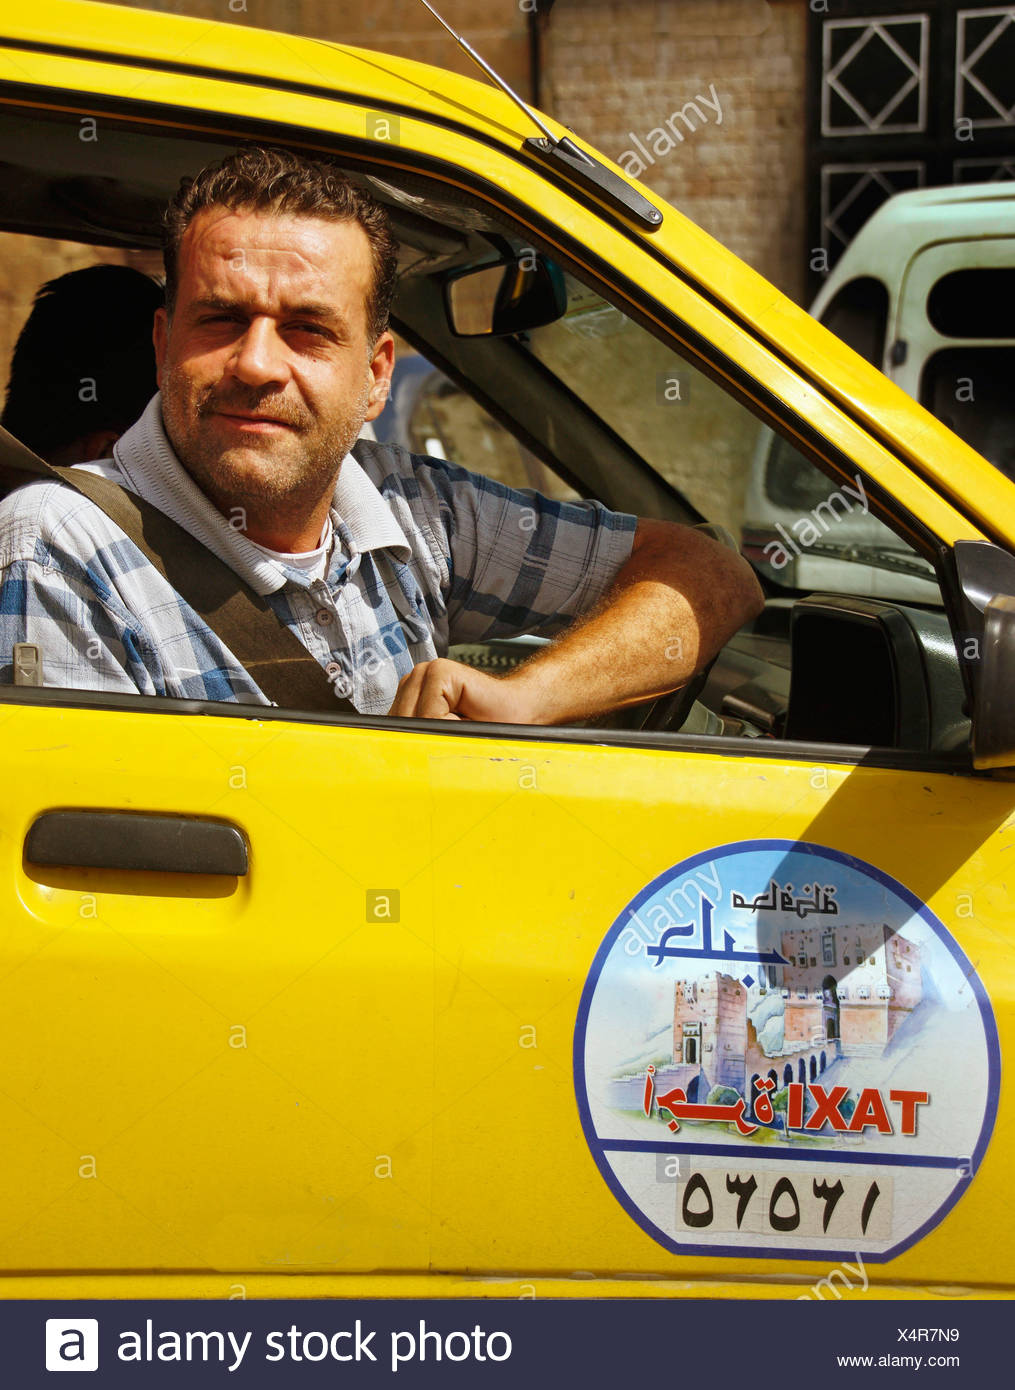 Taxi, Alep, Syrie Photo Stock